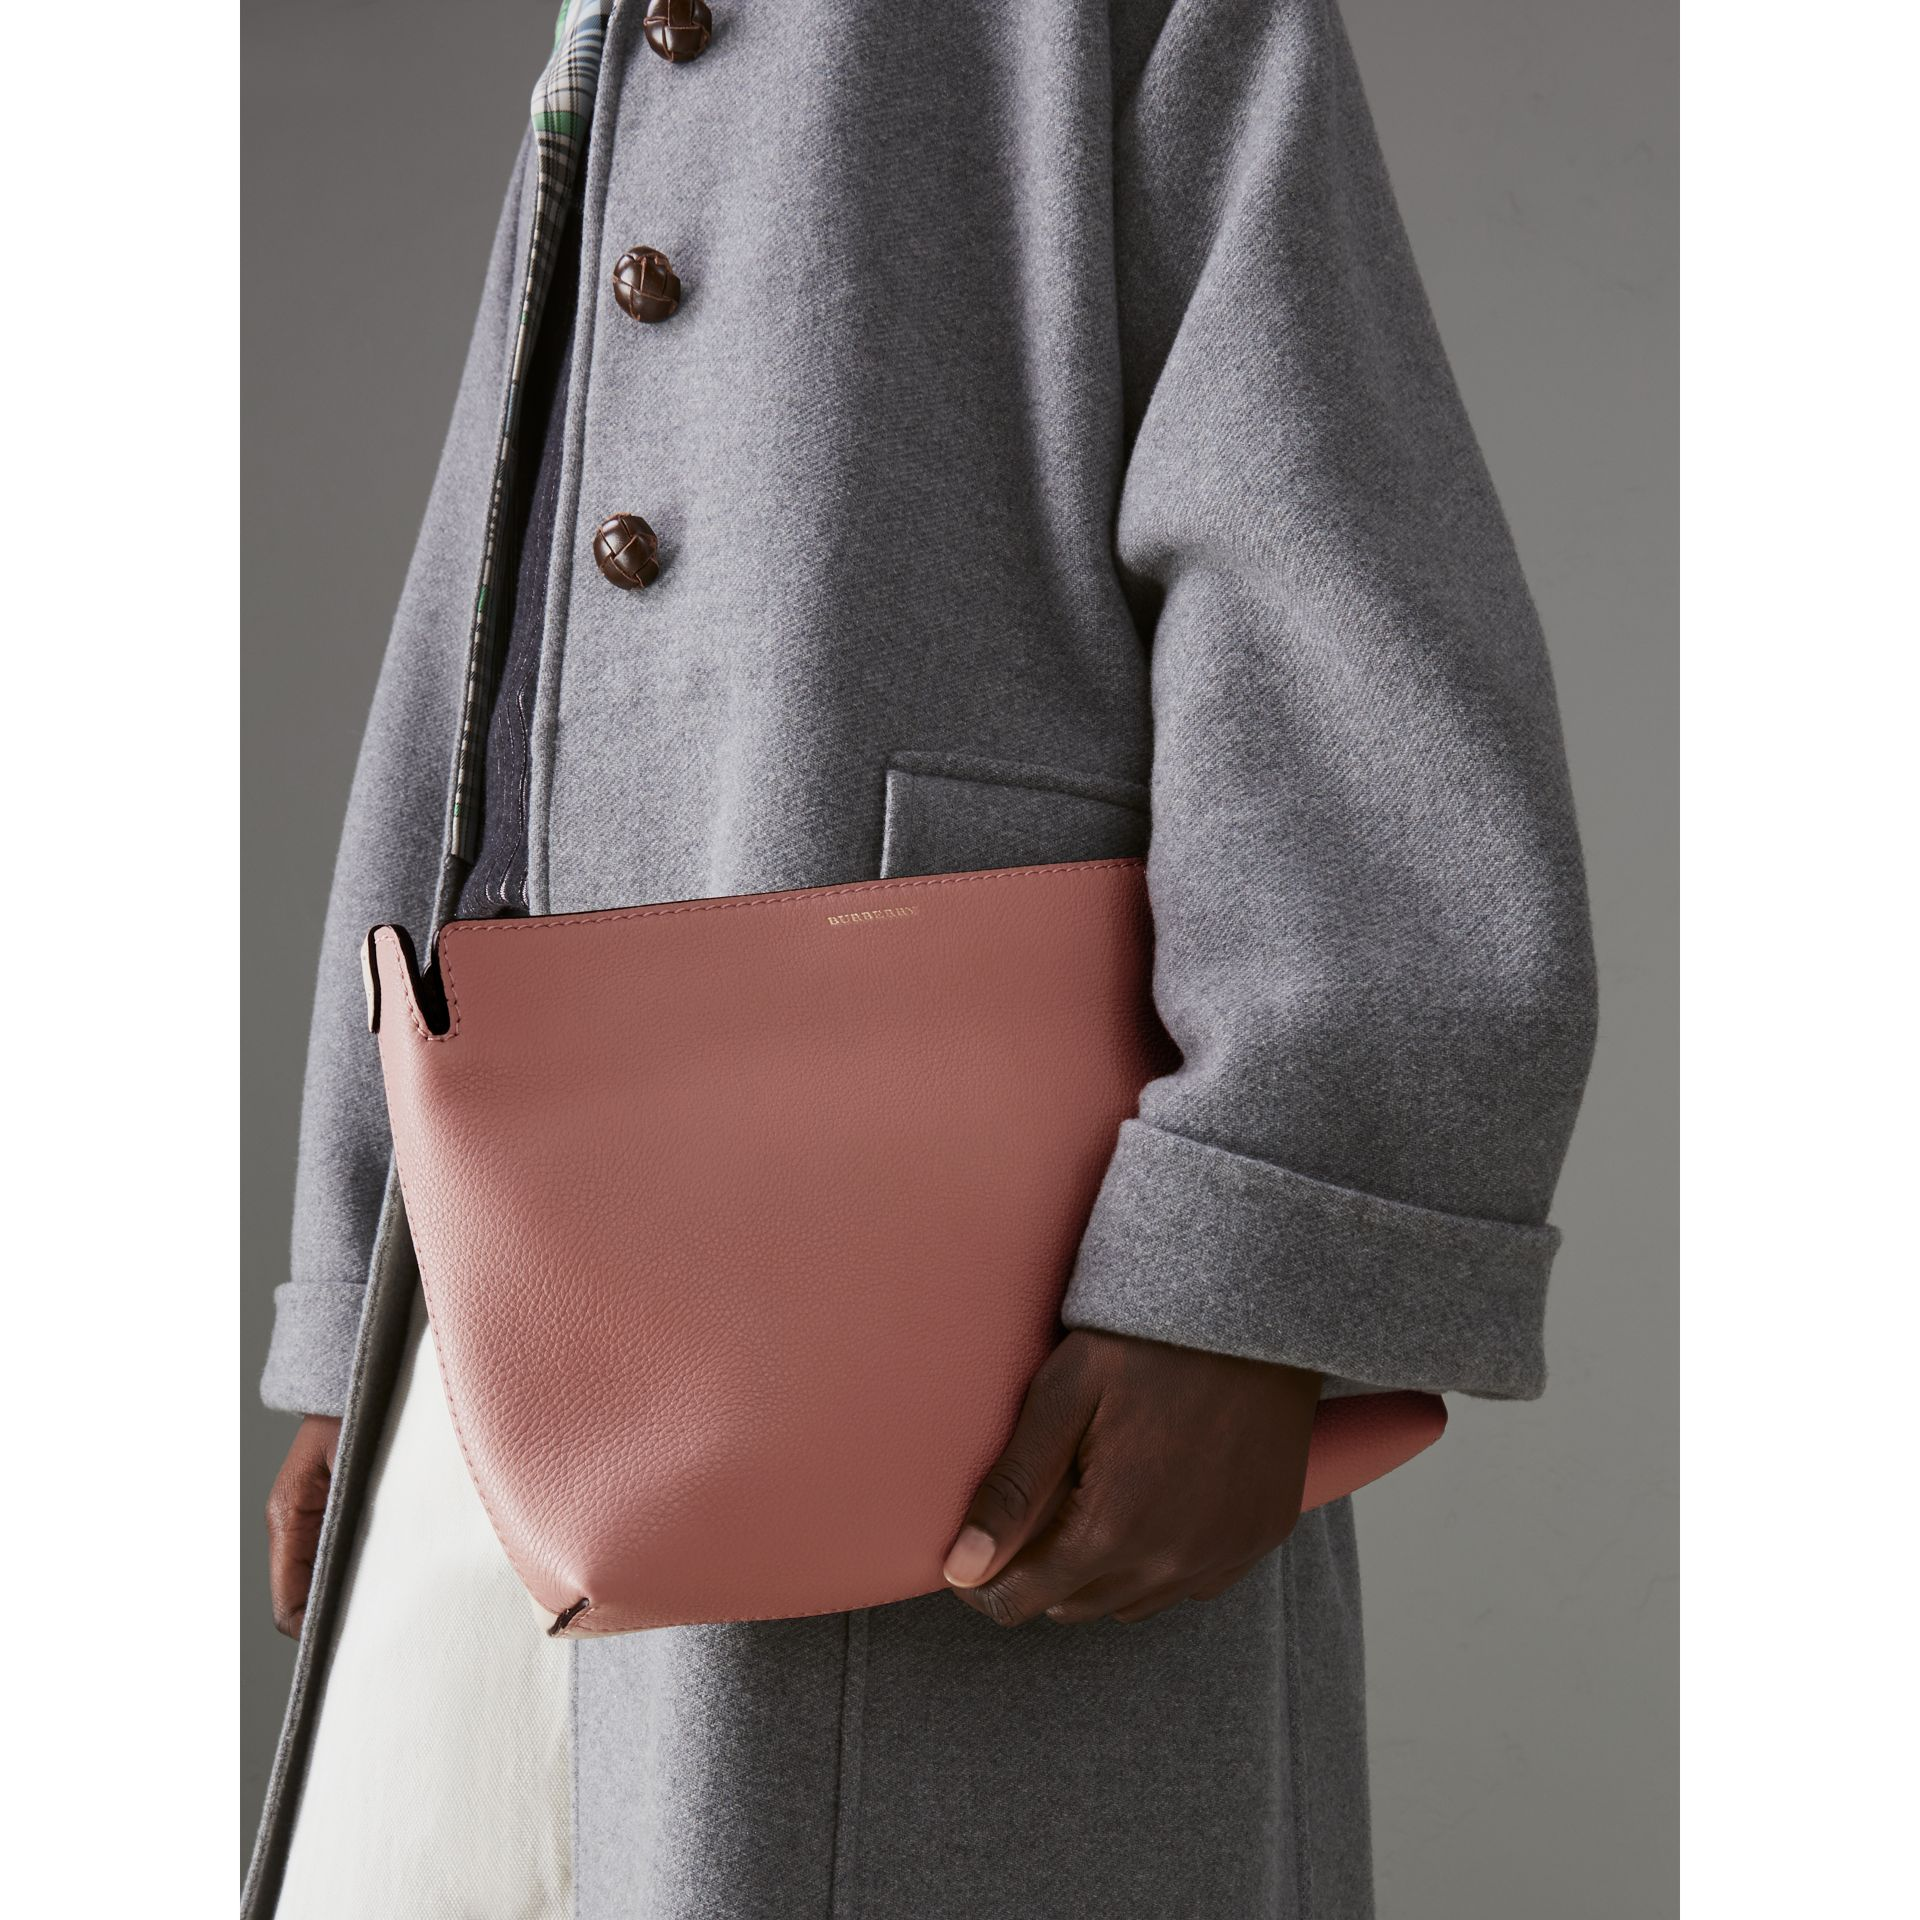 Medium Tri-tone Leather Clutch in Dusty Rose/limestone | Burberry - gallery image 3